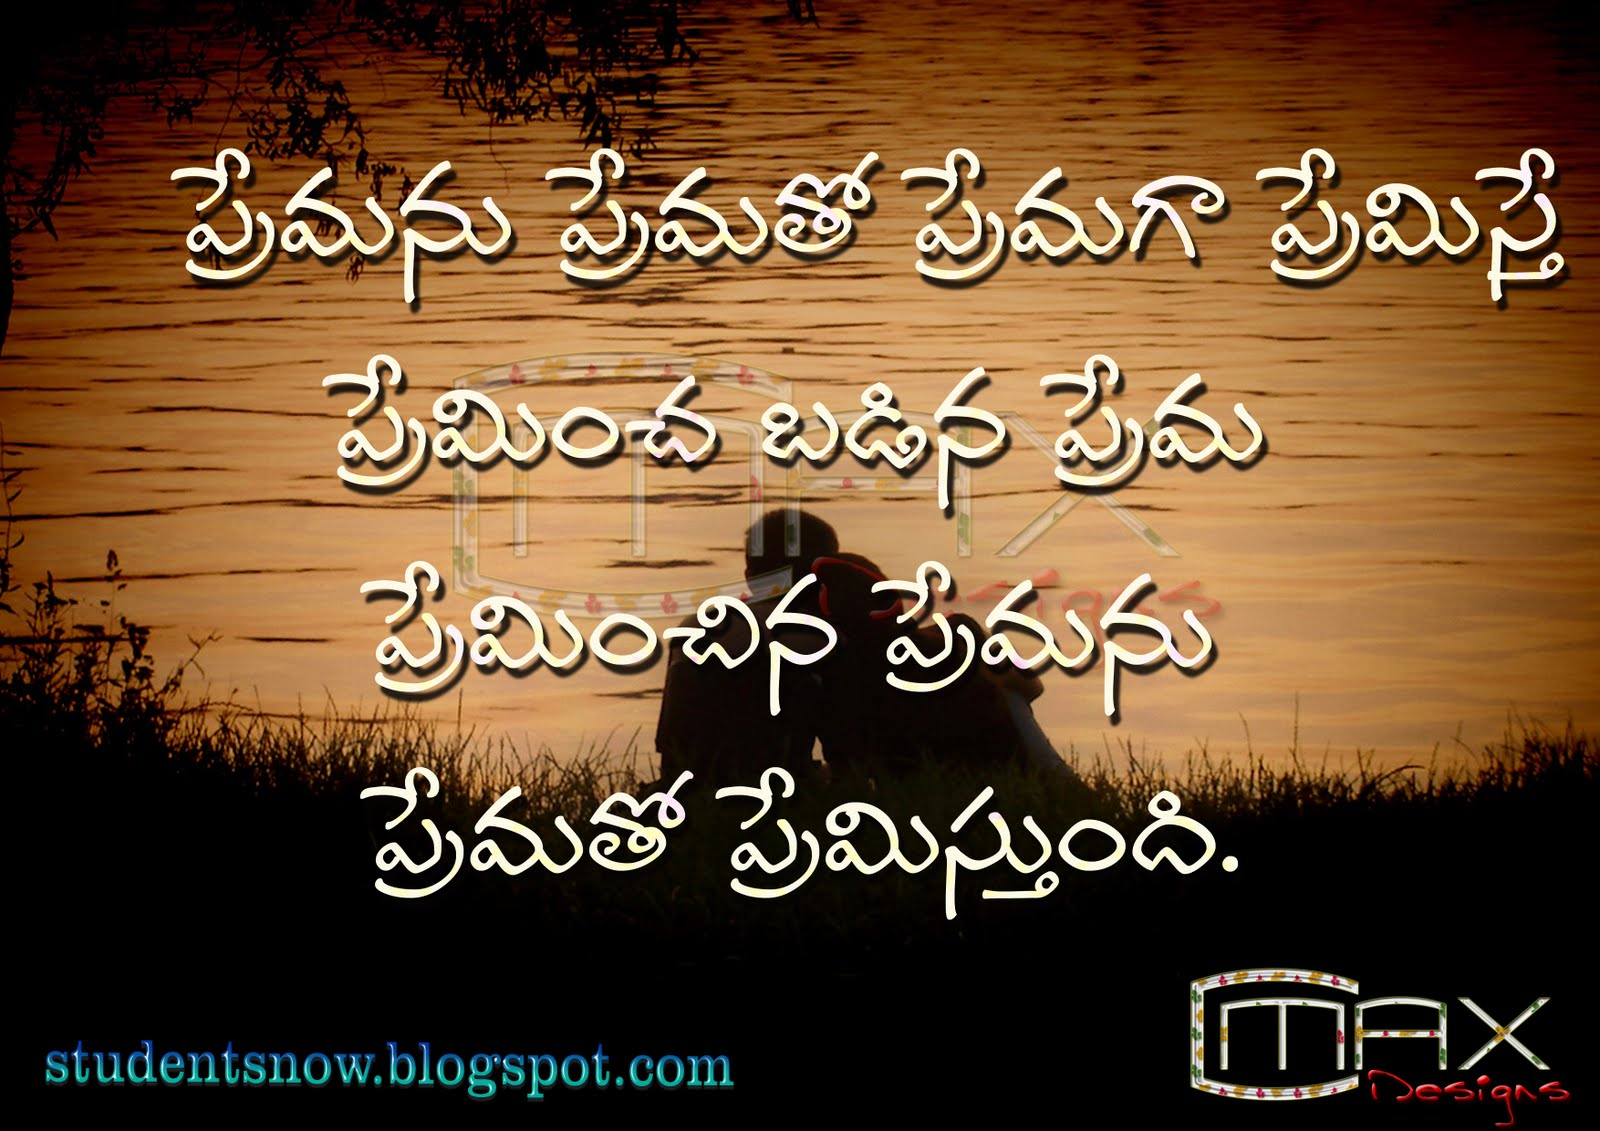 Top 10 Swami Vivekananda Quotes Top 10 Swami Vivekananda Quotes Prema Telugu Love Quote Image StudentsNow in Telugu Tamil Hndi 1600x1131